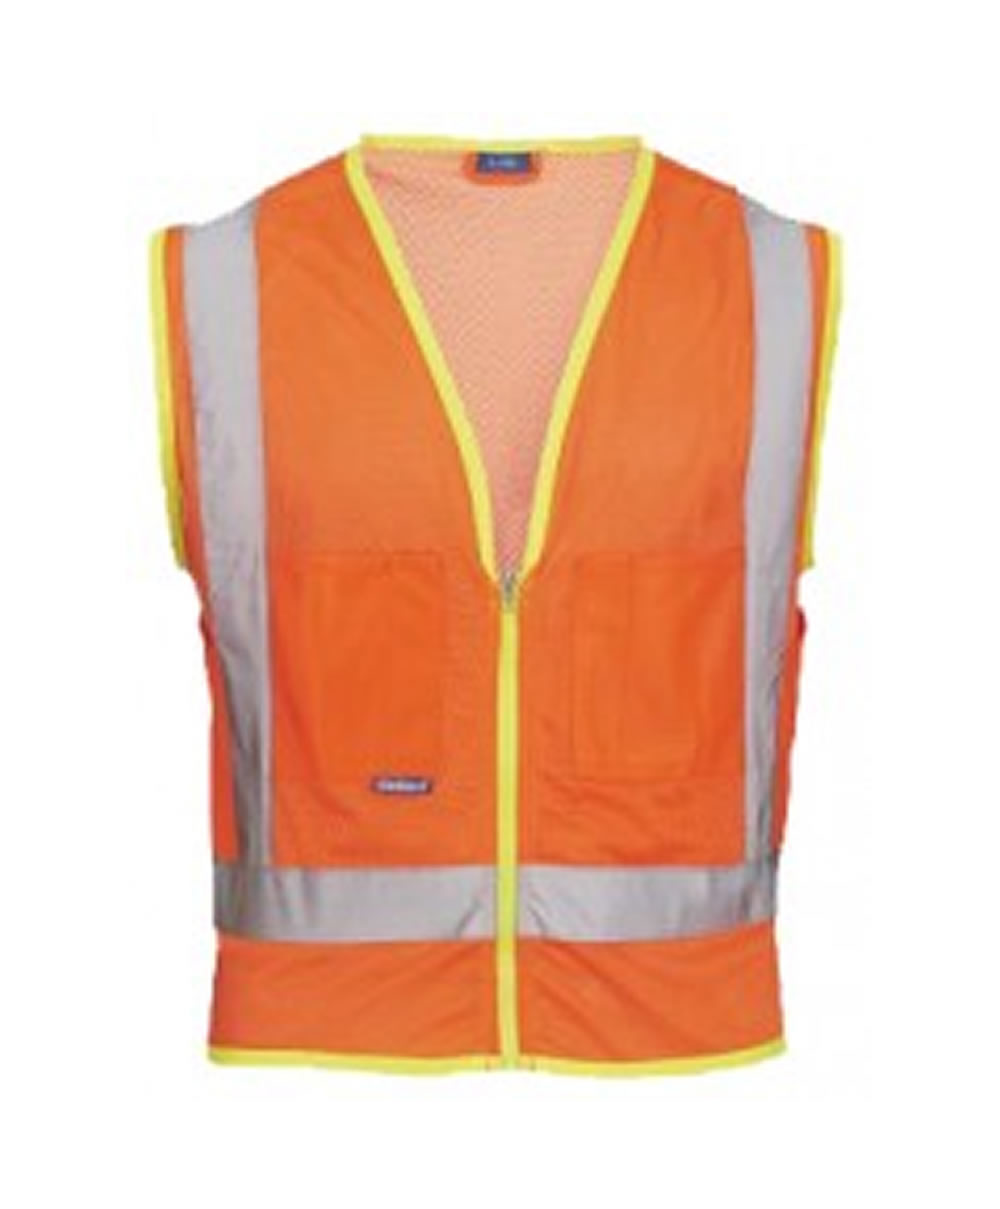 Skillers High Visibility Mesh Safety Vest – Orange